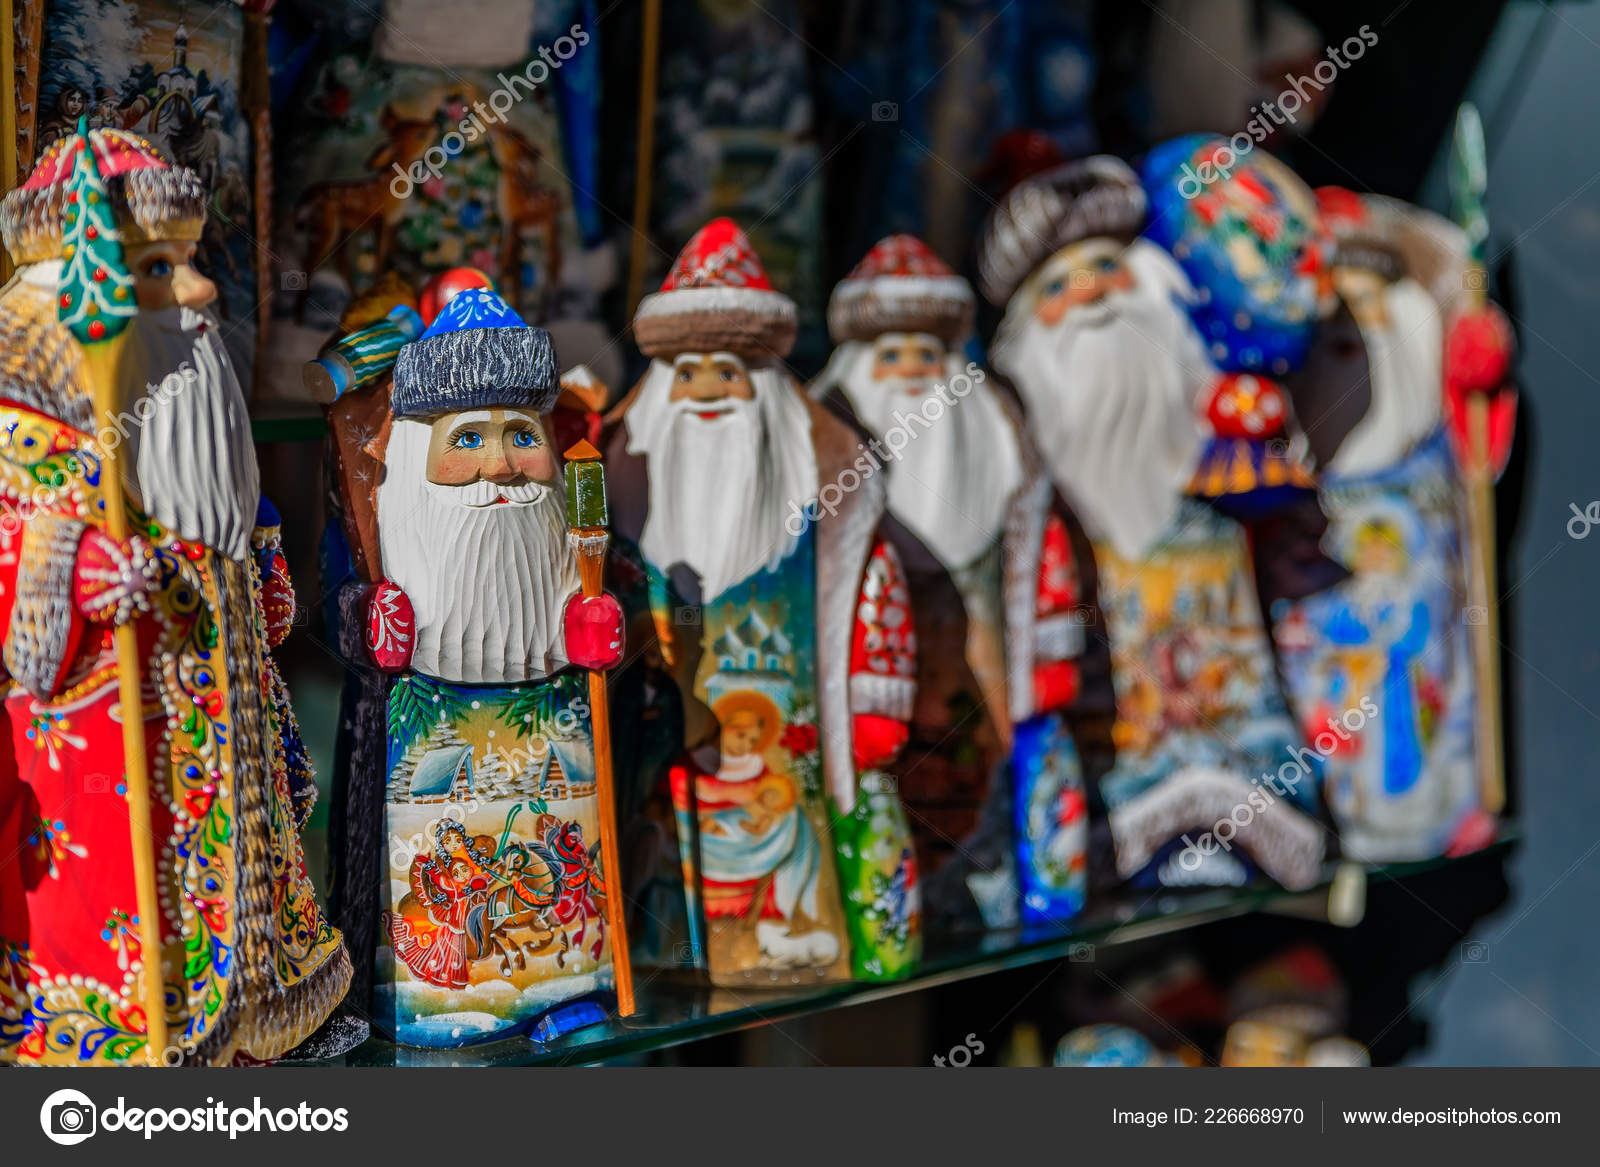 Russia Christmas Ornaments.Russian Wooden Santa Claus Colorful Christmas Ornaments